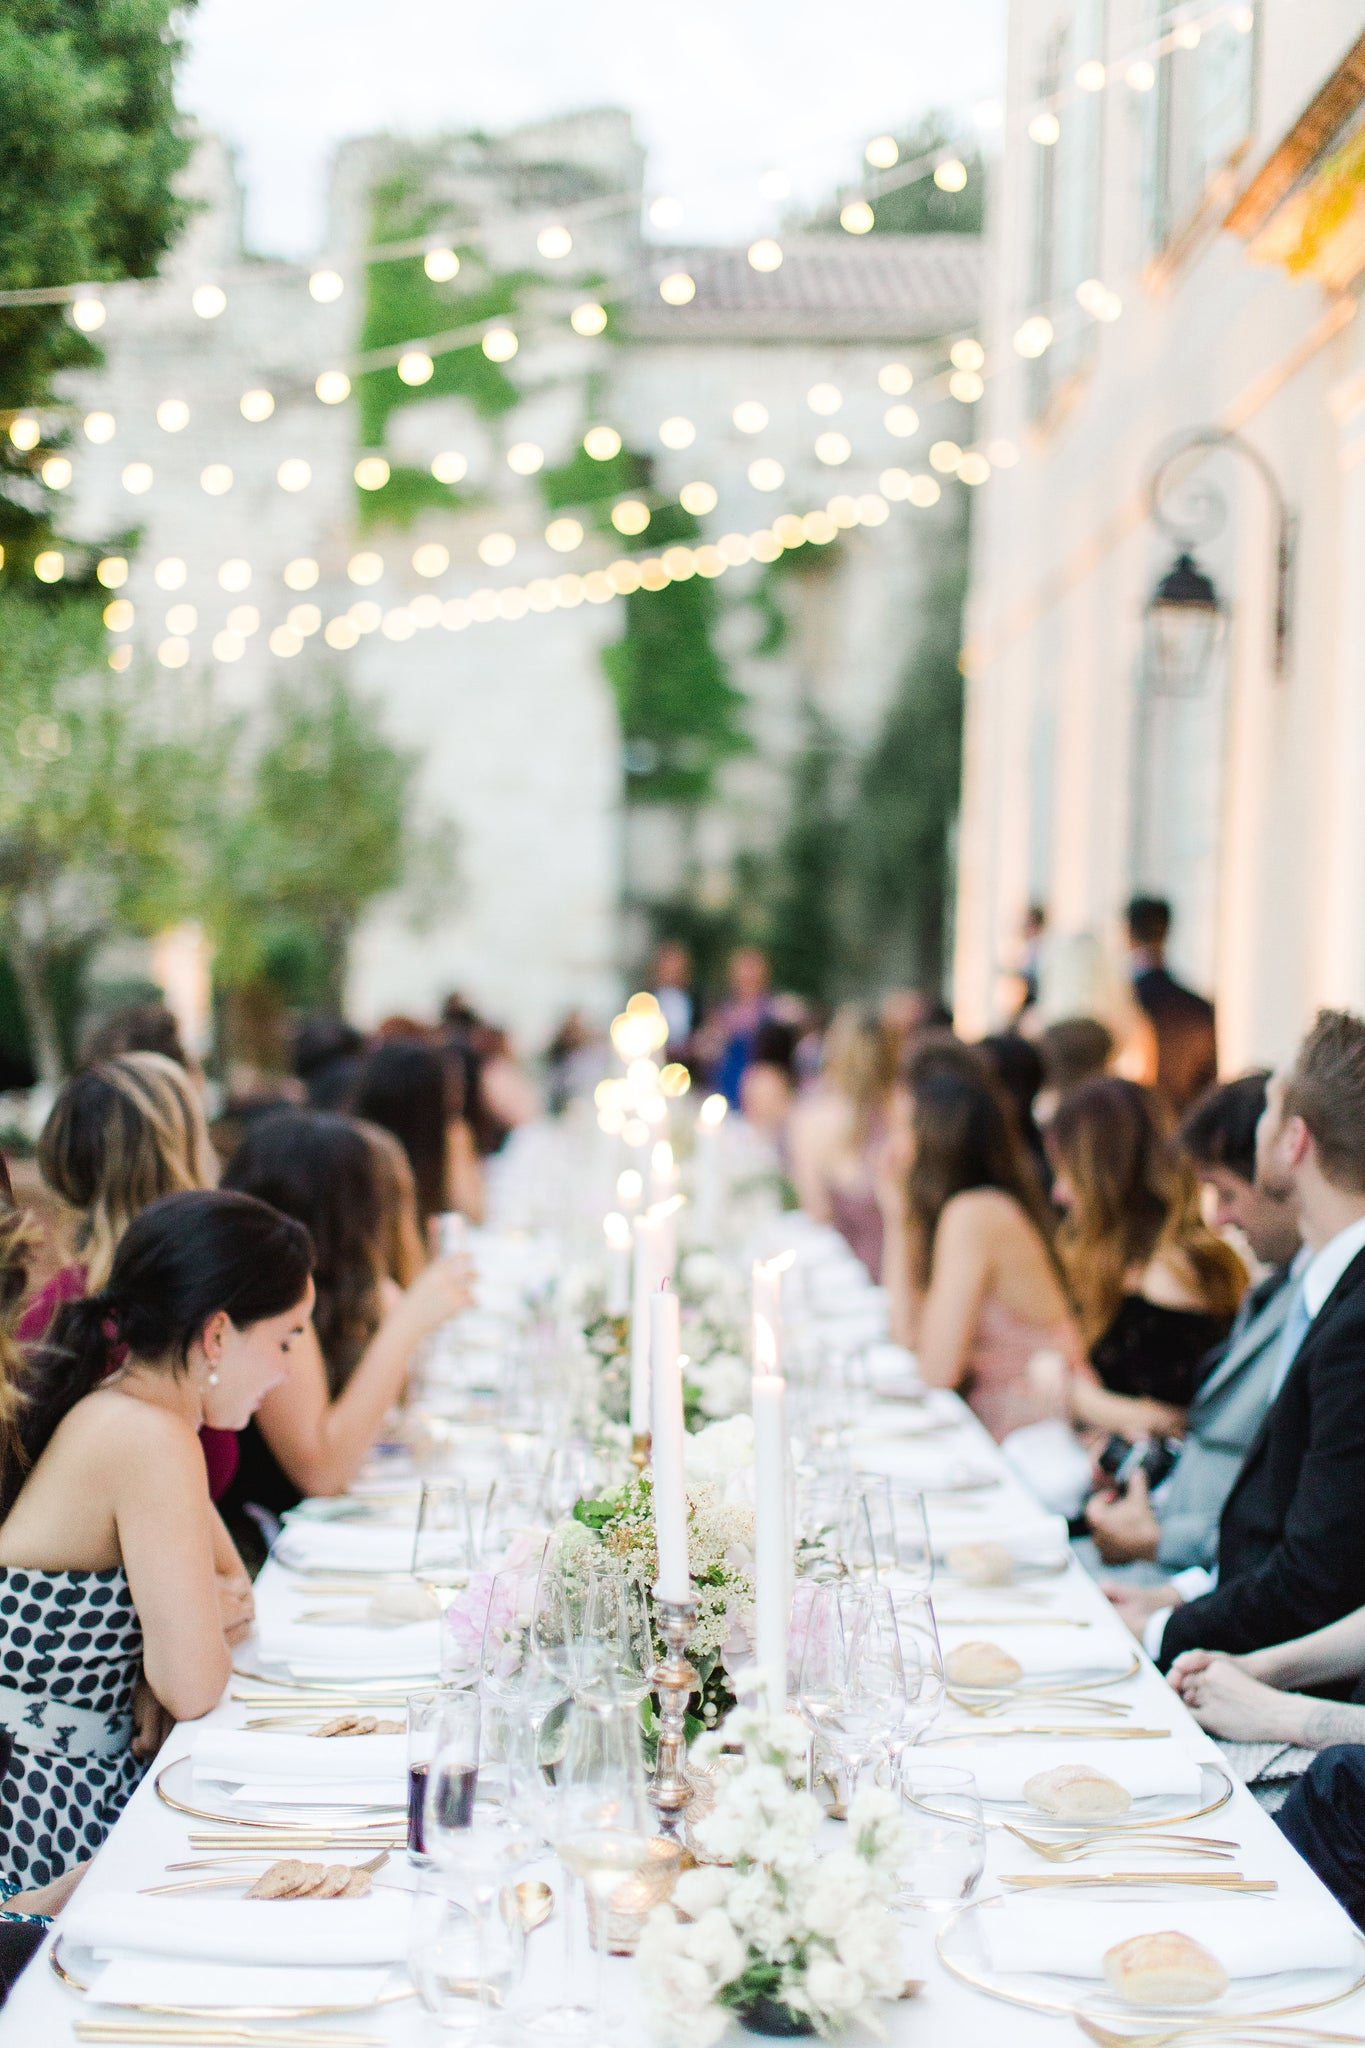 Wedding table, Katie Dean Jewelry romantic destination wedding at a chateau, Provence, France